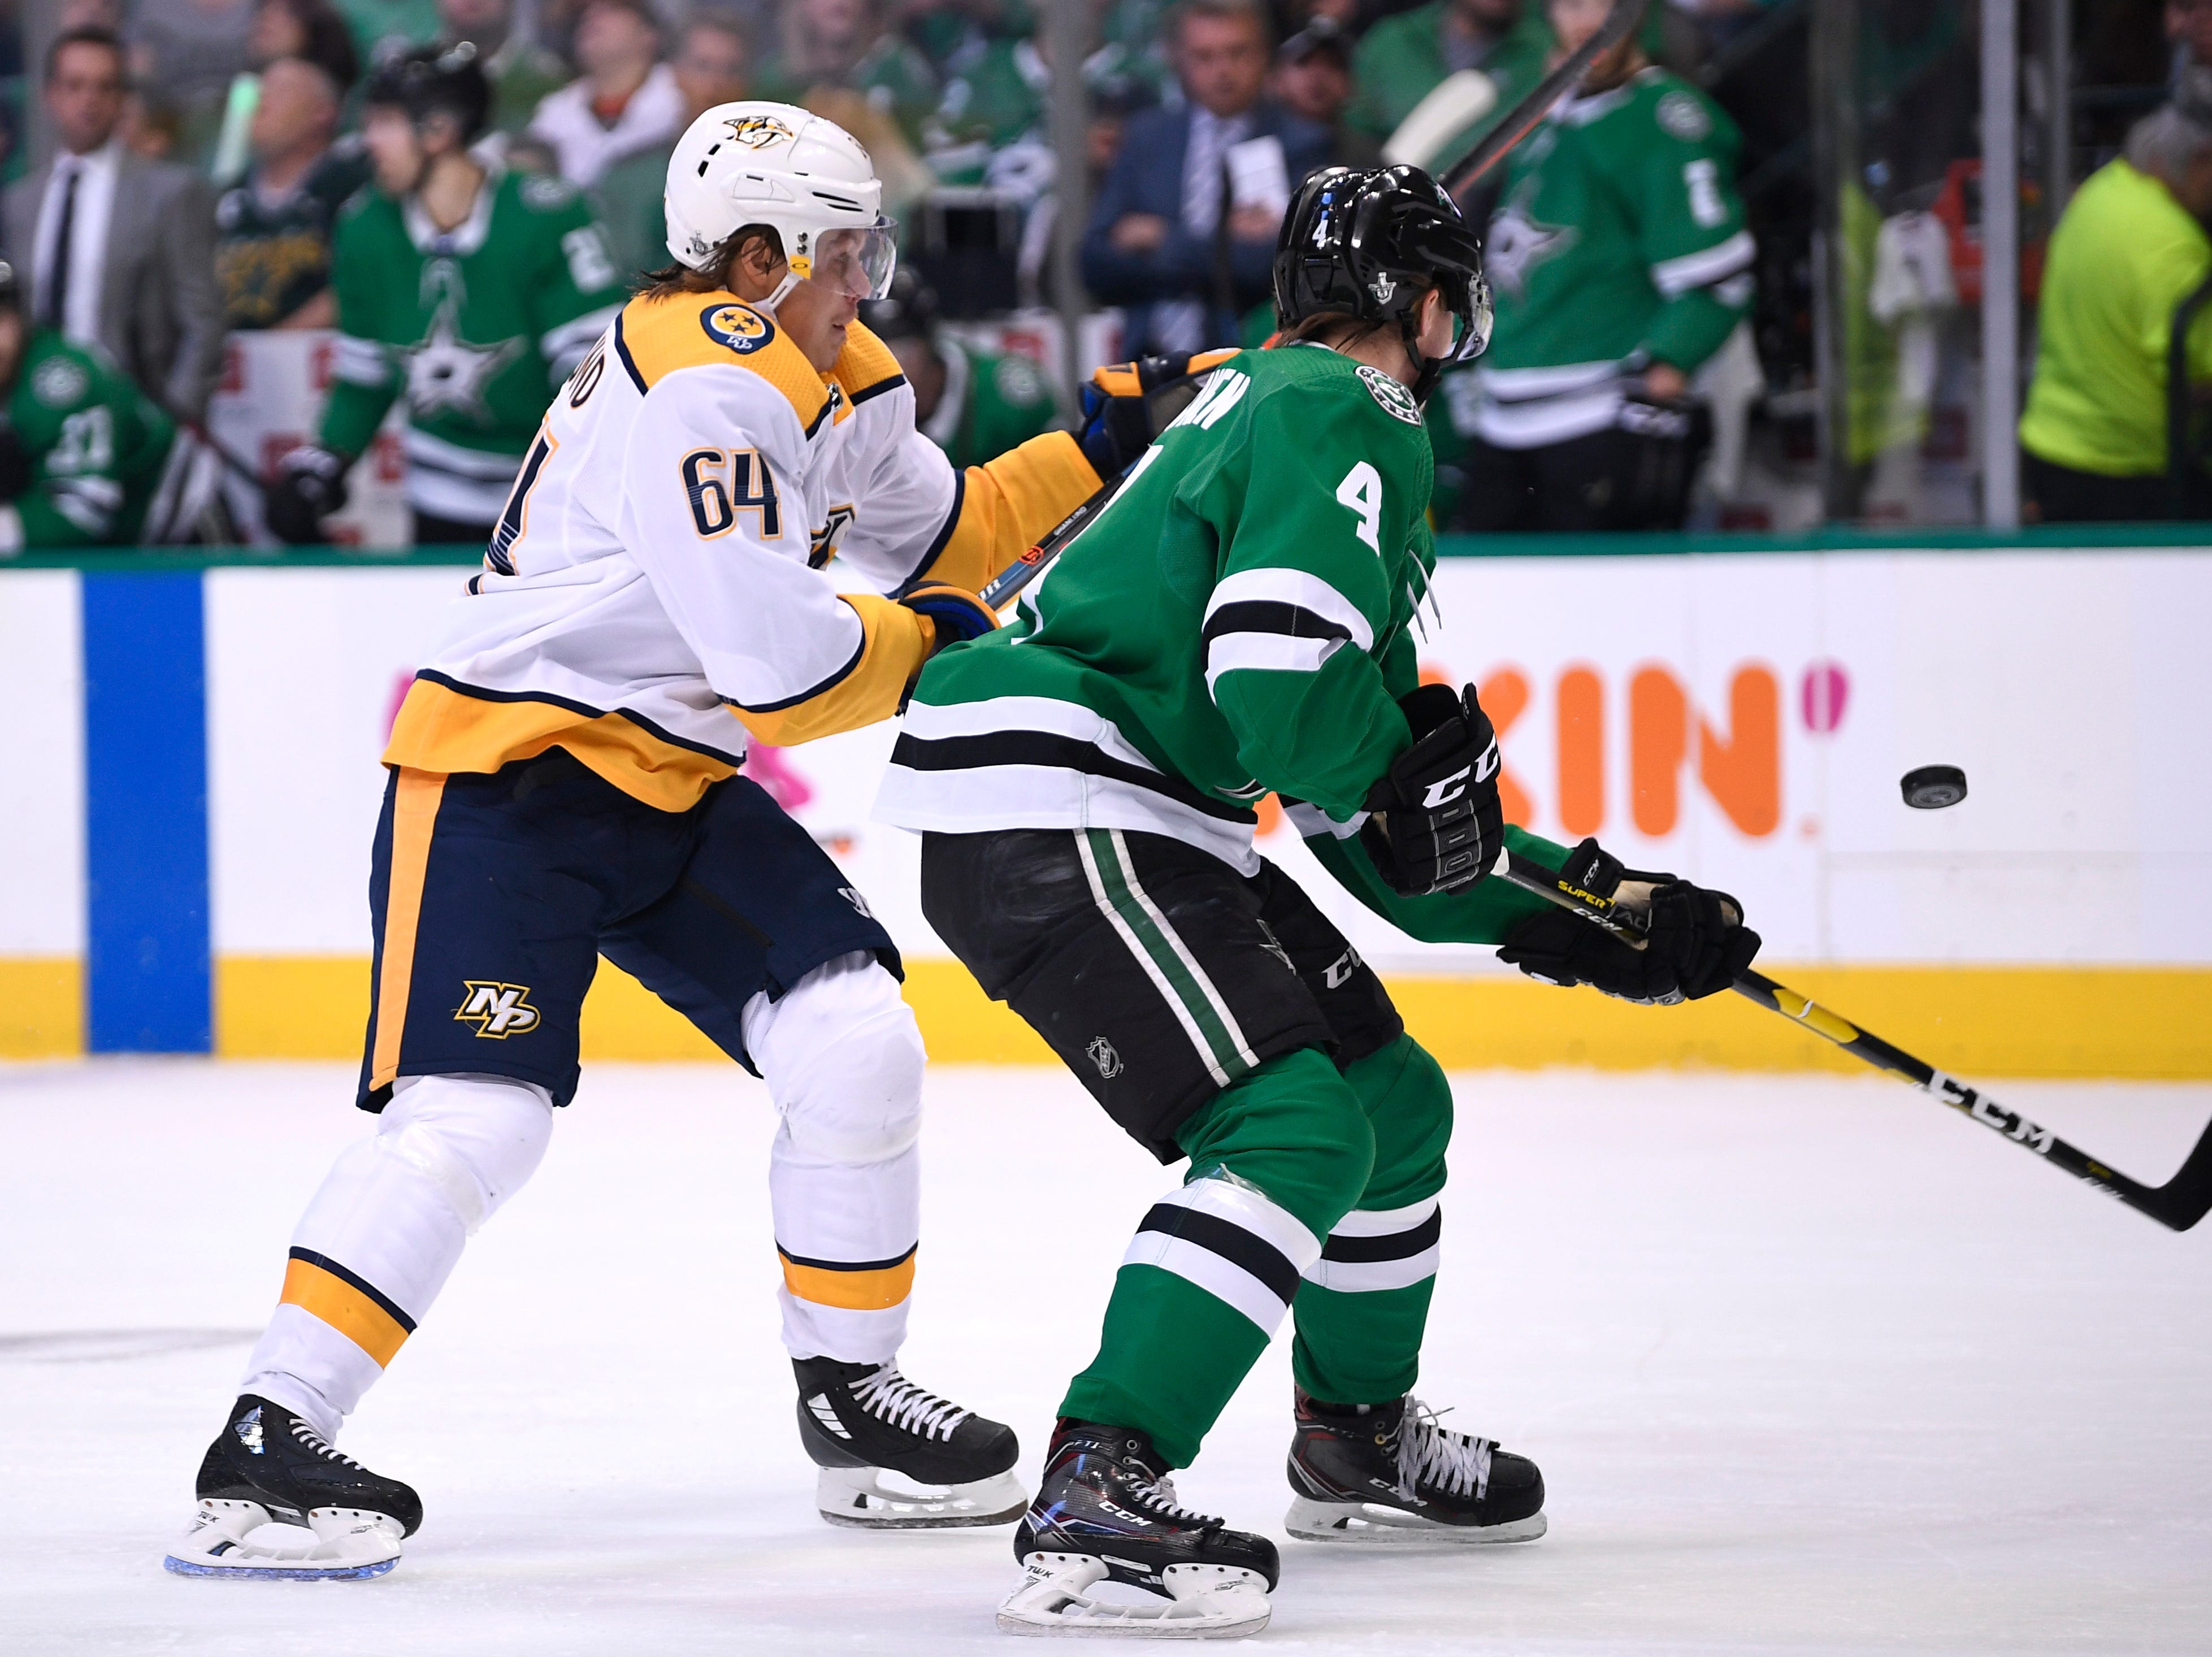 Nashville Predators center Mikael Granlund (64) and Dallas Stars defenseman Miro Heiskanen (4) chase the puck during the first period of the divisional semifinal game at the American Airlines Center in Dallas, Texas, Monday, April 22, 2019.